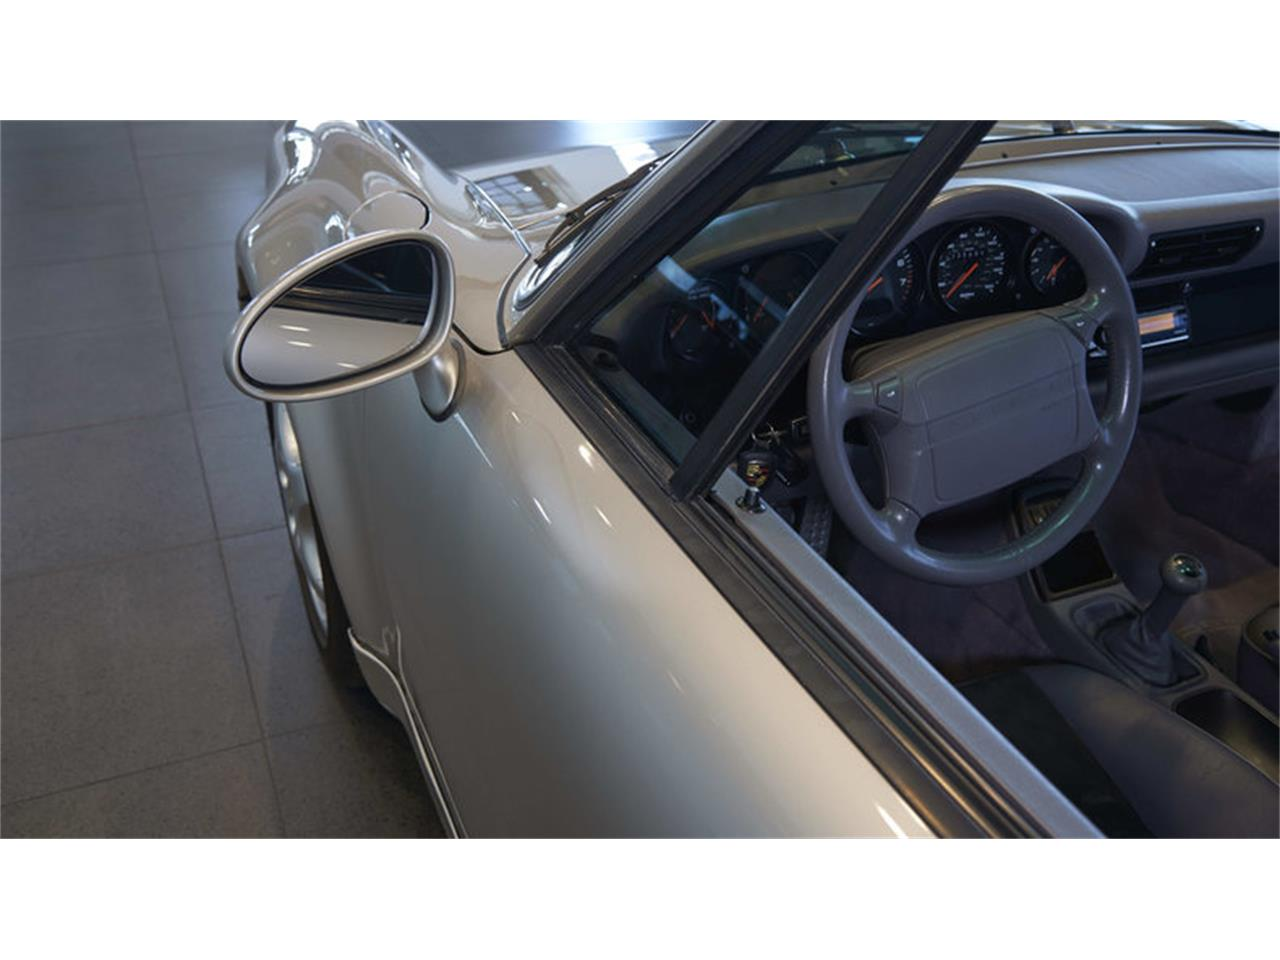 Large Picture of 1991 Porsche 911 Turbo Offered by Gaudin Porsche of Las Vegas - LIVG